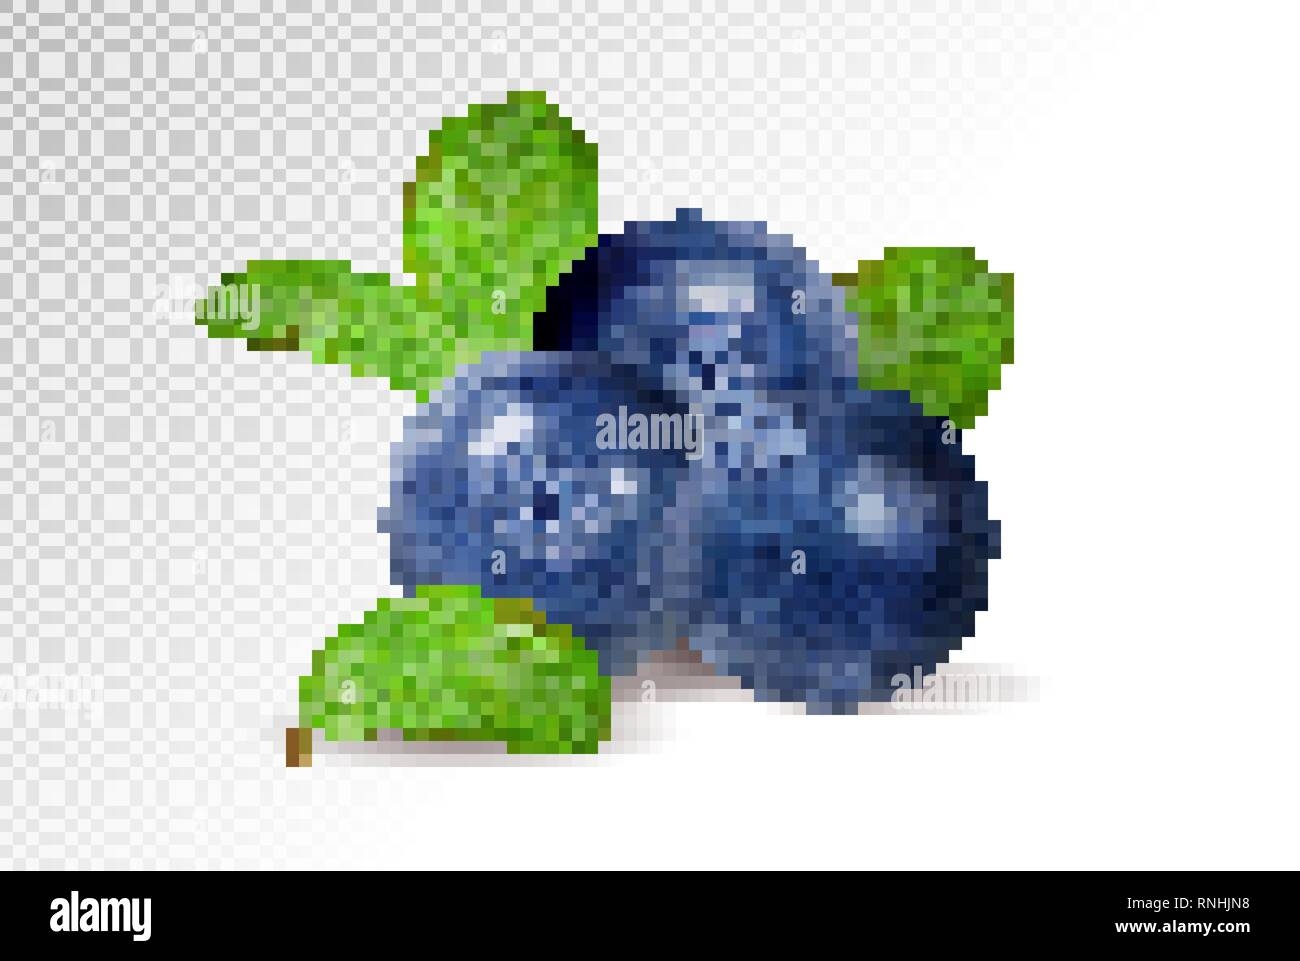 Blueberries on transparent background. Quality realistic vector, 3d illustration - Stock Vector